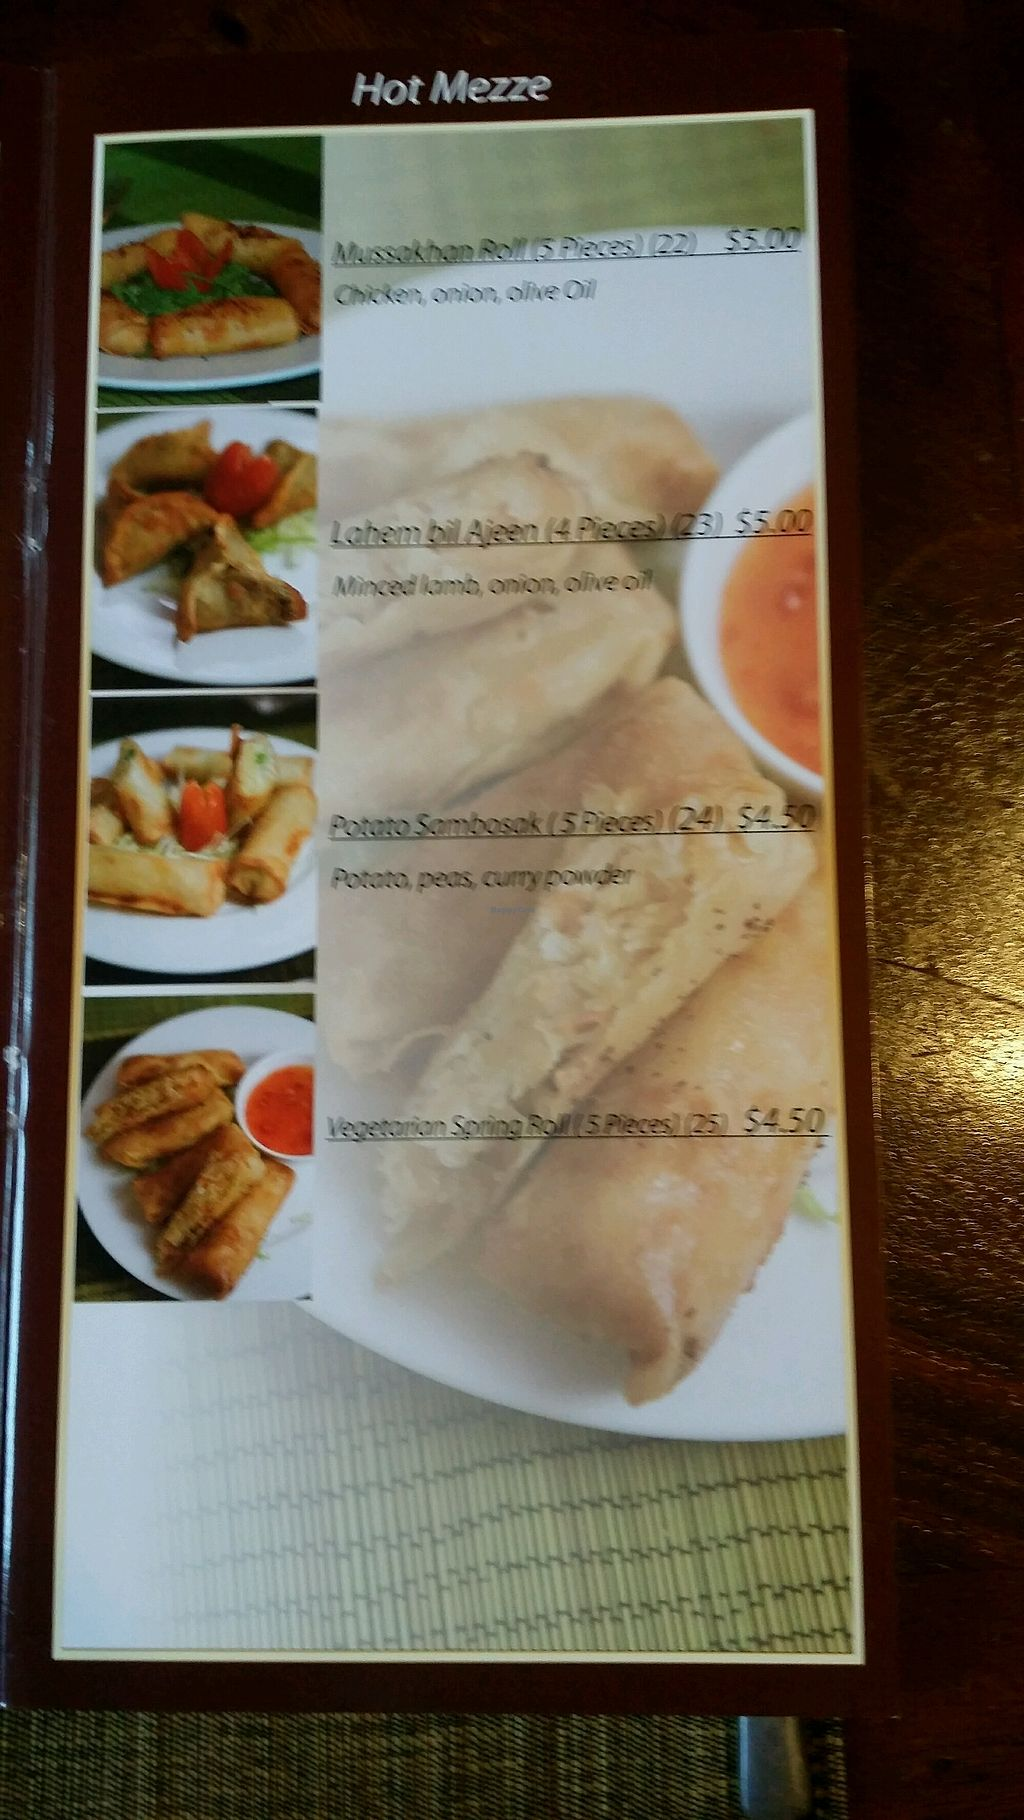 """Photo of Petra Restaurant  by <a href=""""/members/profile/Mike%20Munsie"""">Mike Munsie</a> <br/>menu 1 <br/> September 9, 2017  - <a href='/contact/abuse/image/93857/302457'>Report</a>"""